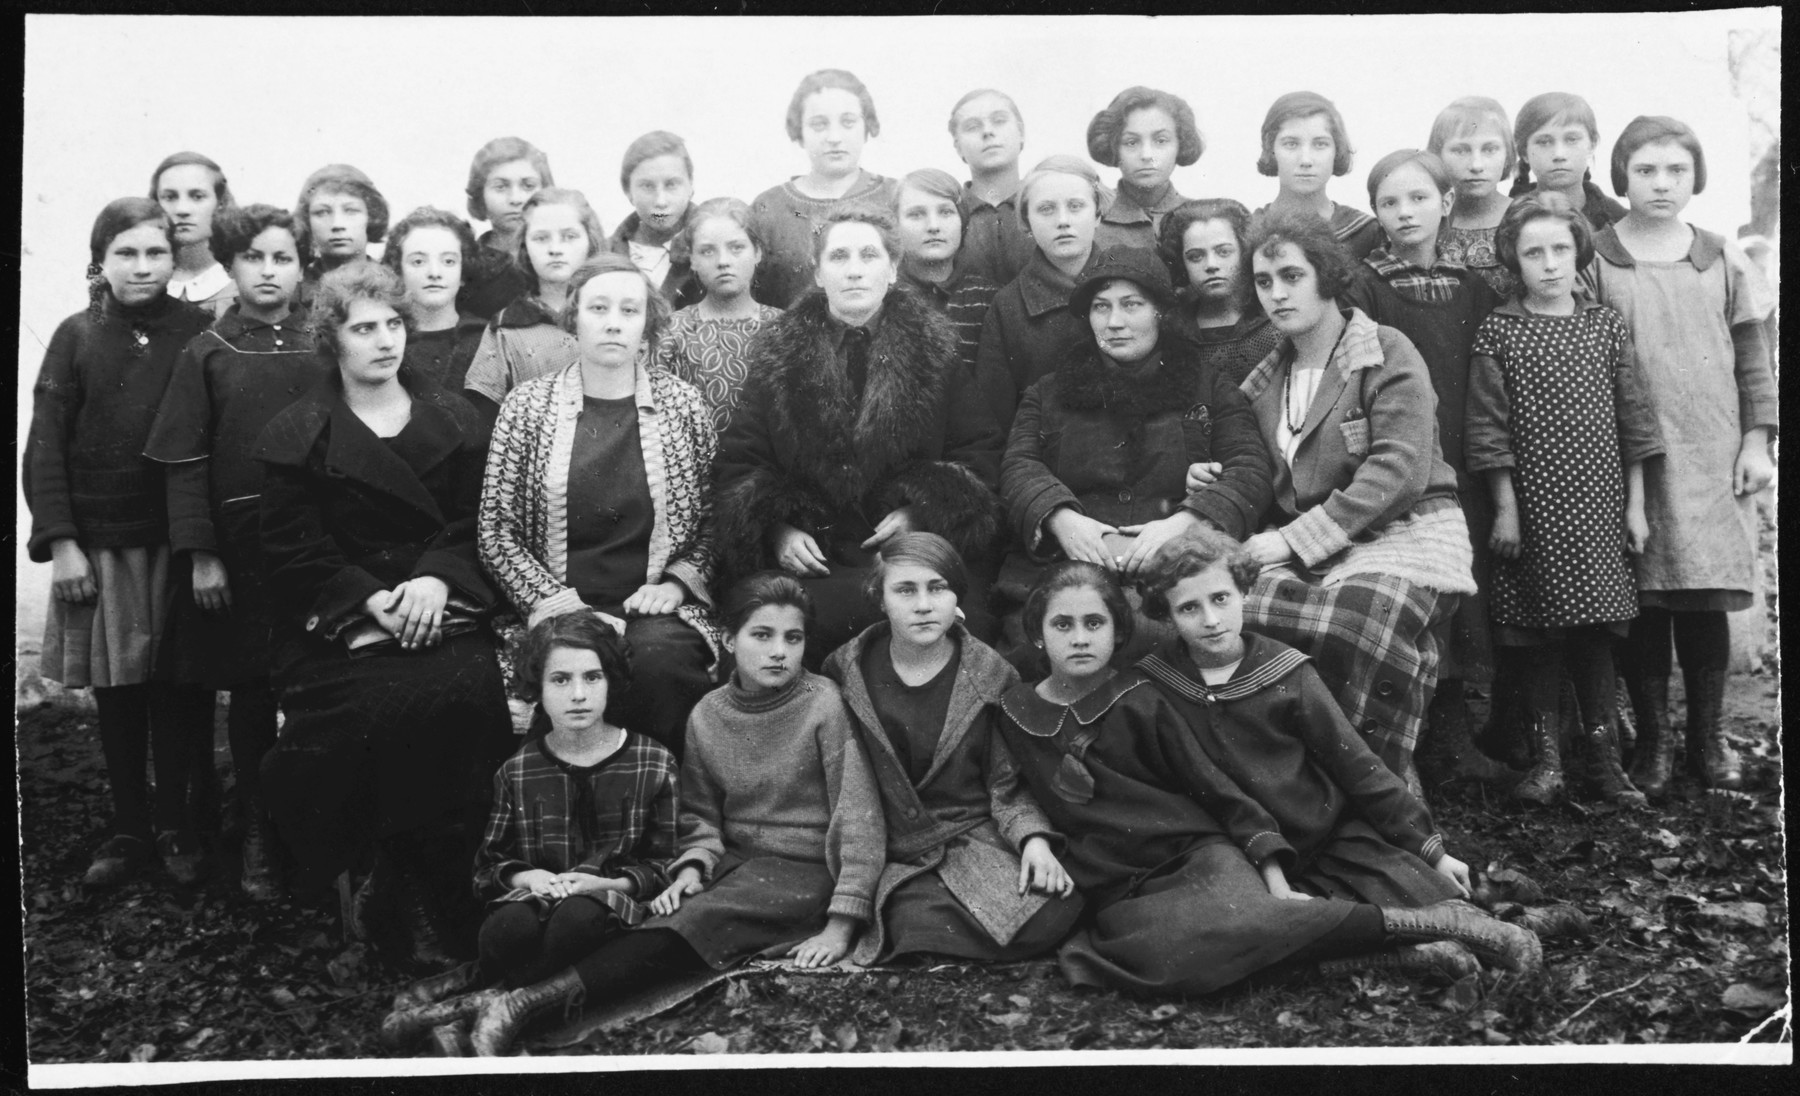 Group portrait of girls and faculty in a Polish school in Grzymalow.  Lea Somerstein is pictured on the bottom right.  The second girl from the left in the upper row is Ernestina (Tina) Hellreich.